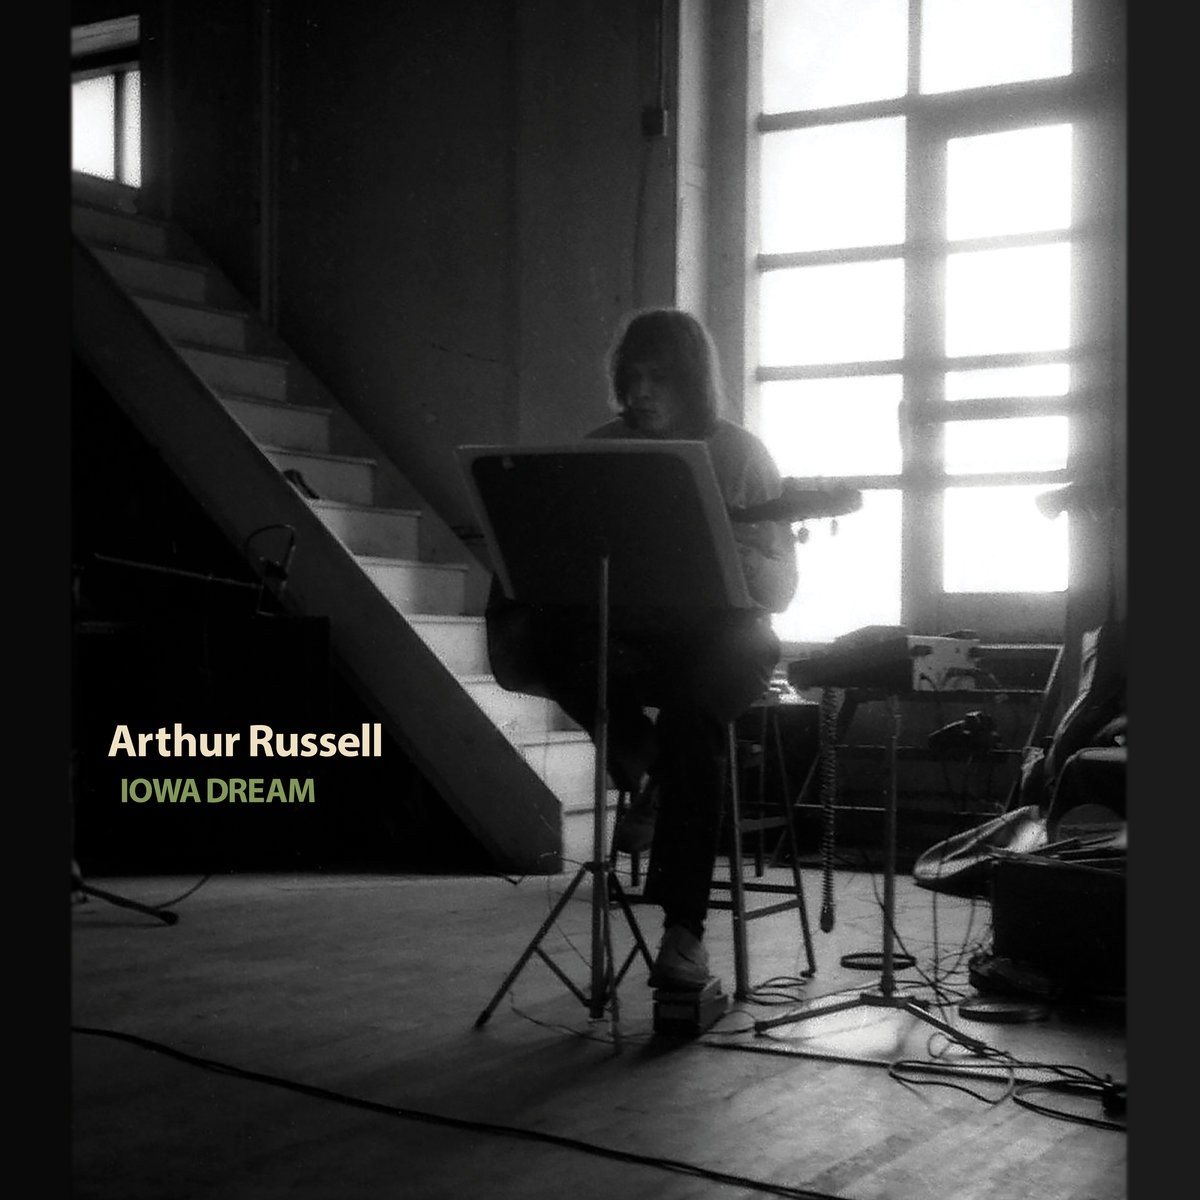 Arthur Russell Iowa Dream